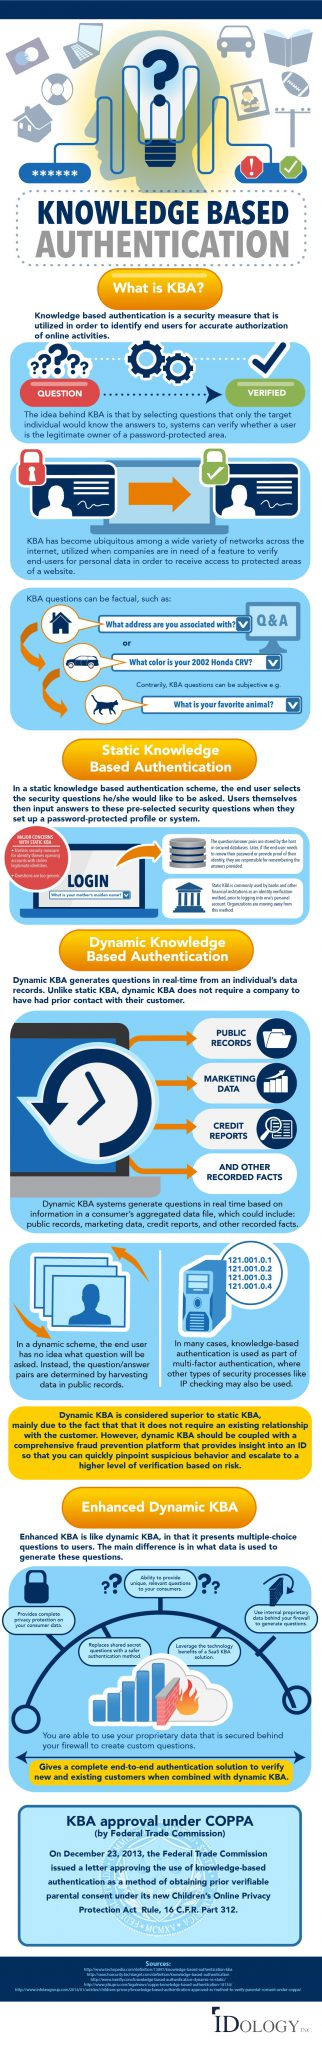 Knowledge Based Authentication: The Difference between